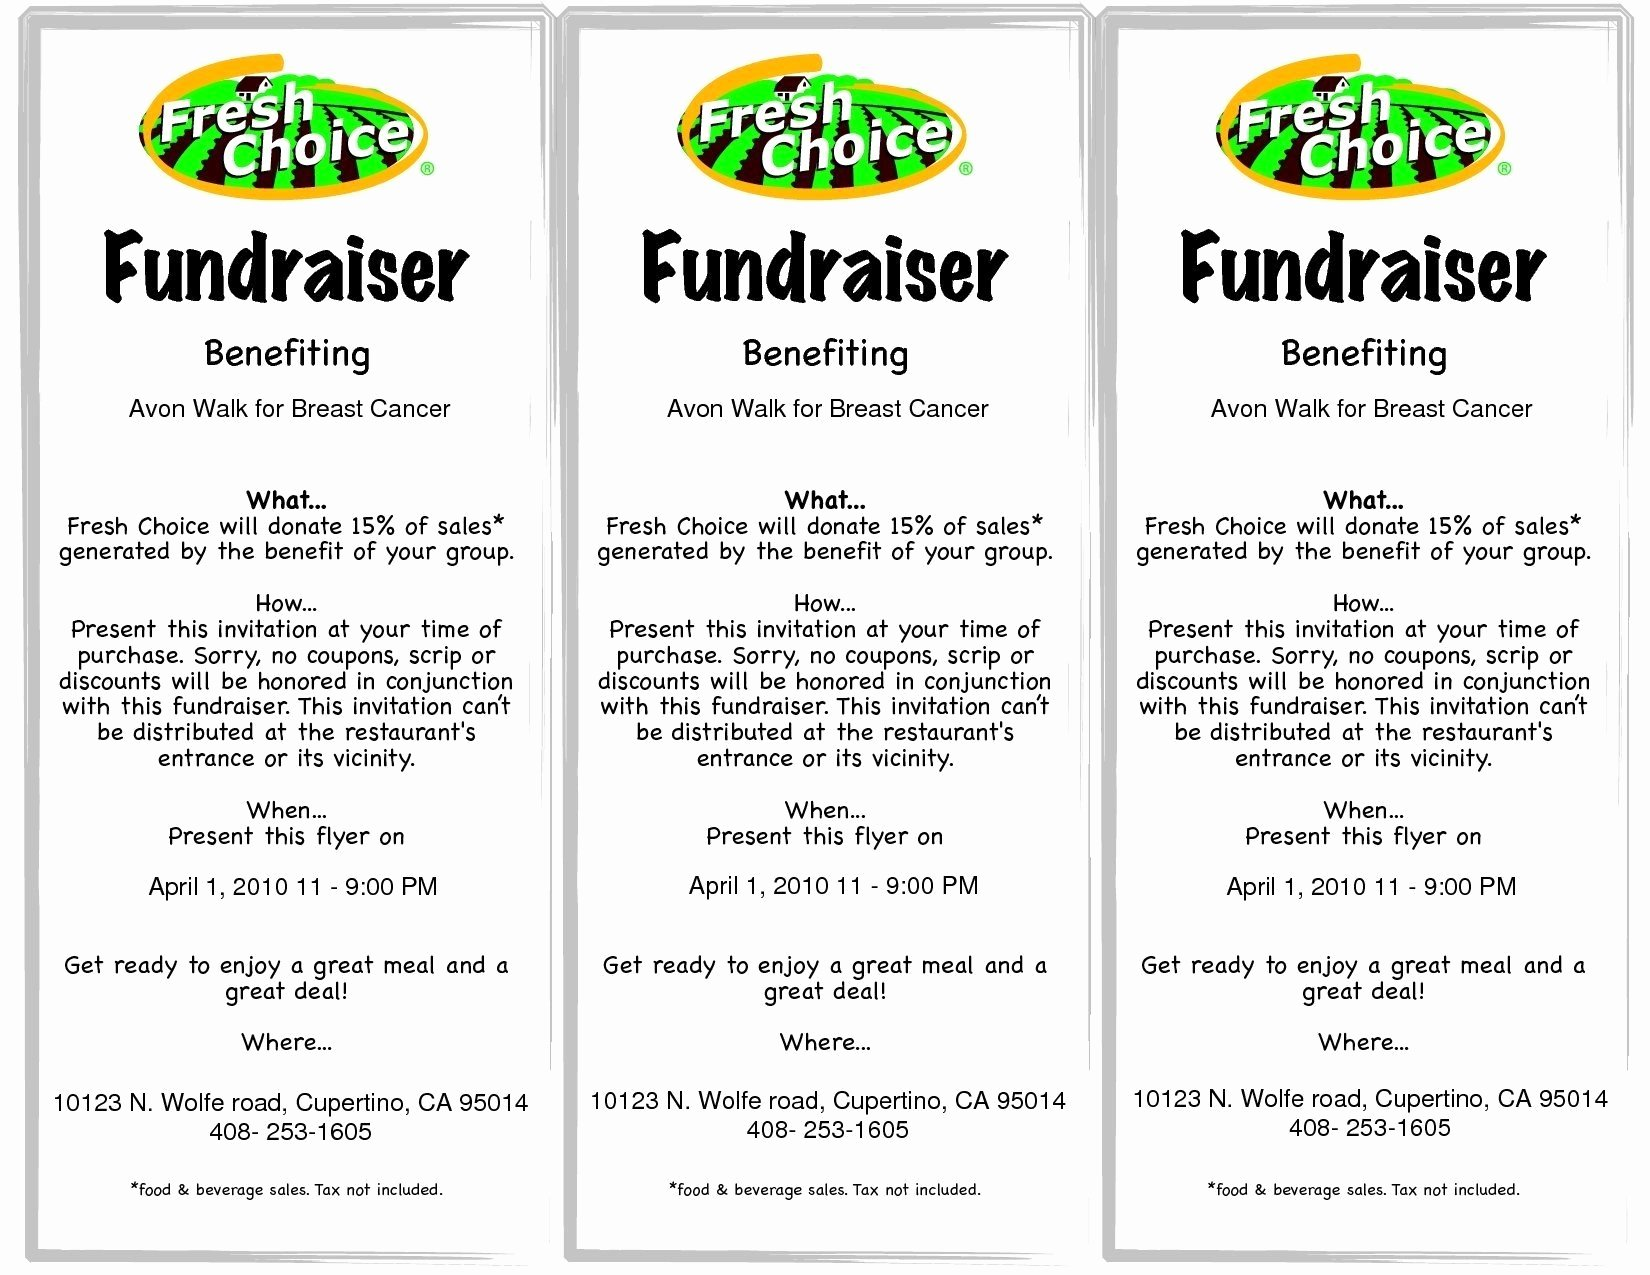 Fundraiser Ticket Template Free Lovely Fundraiser Ticket Template Free Download